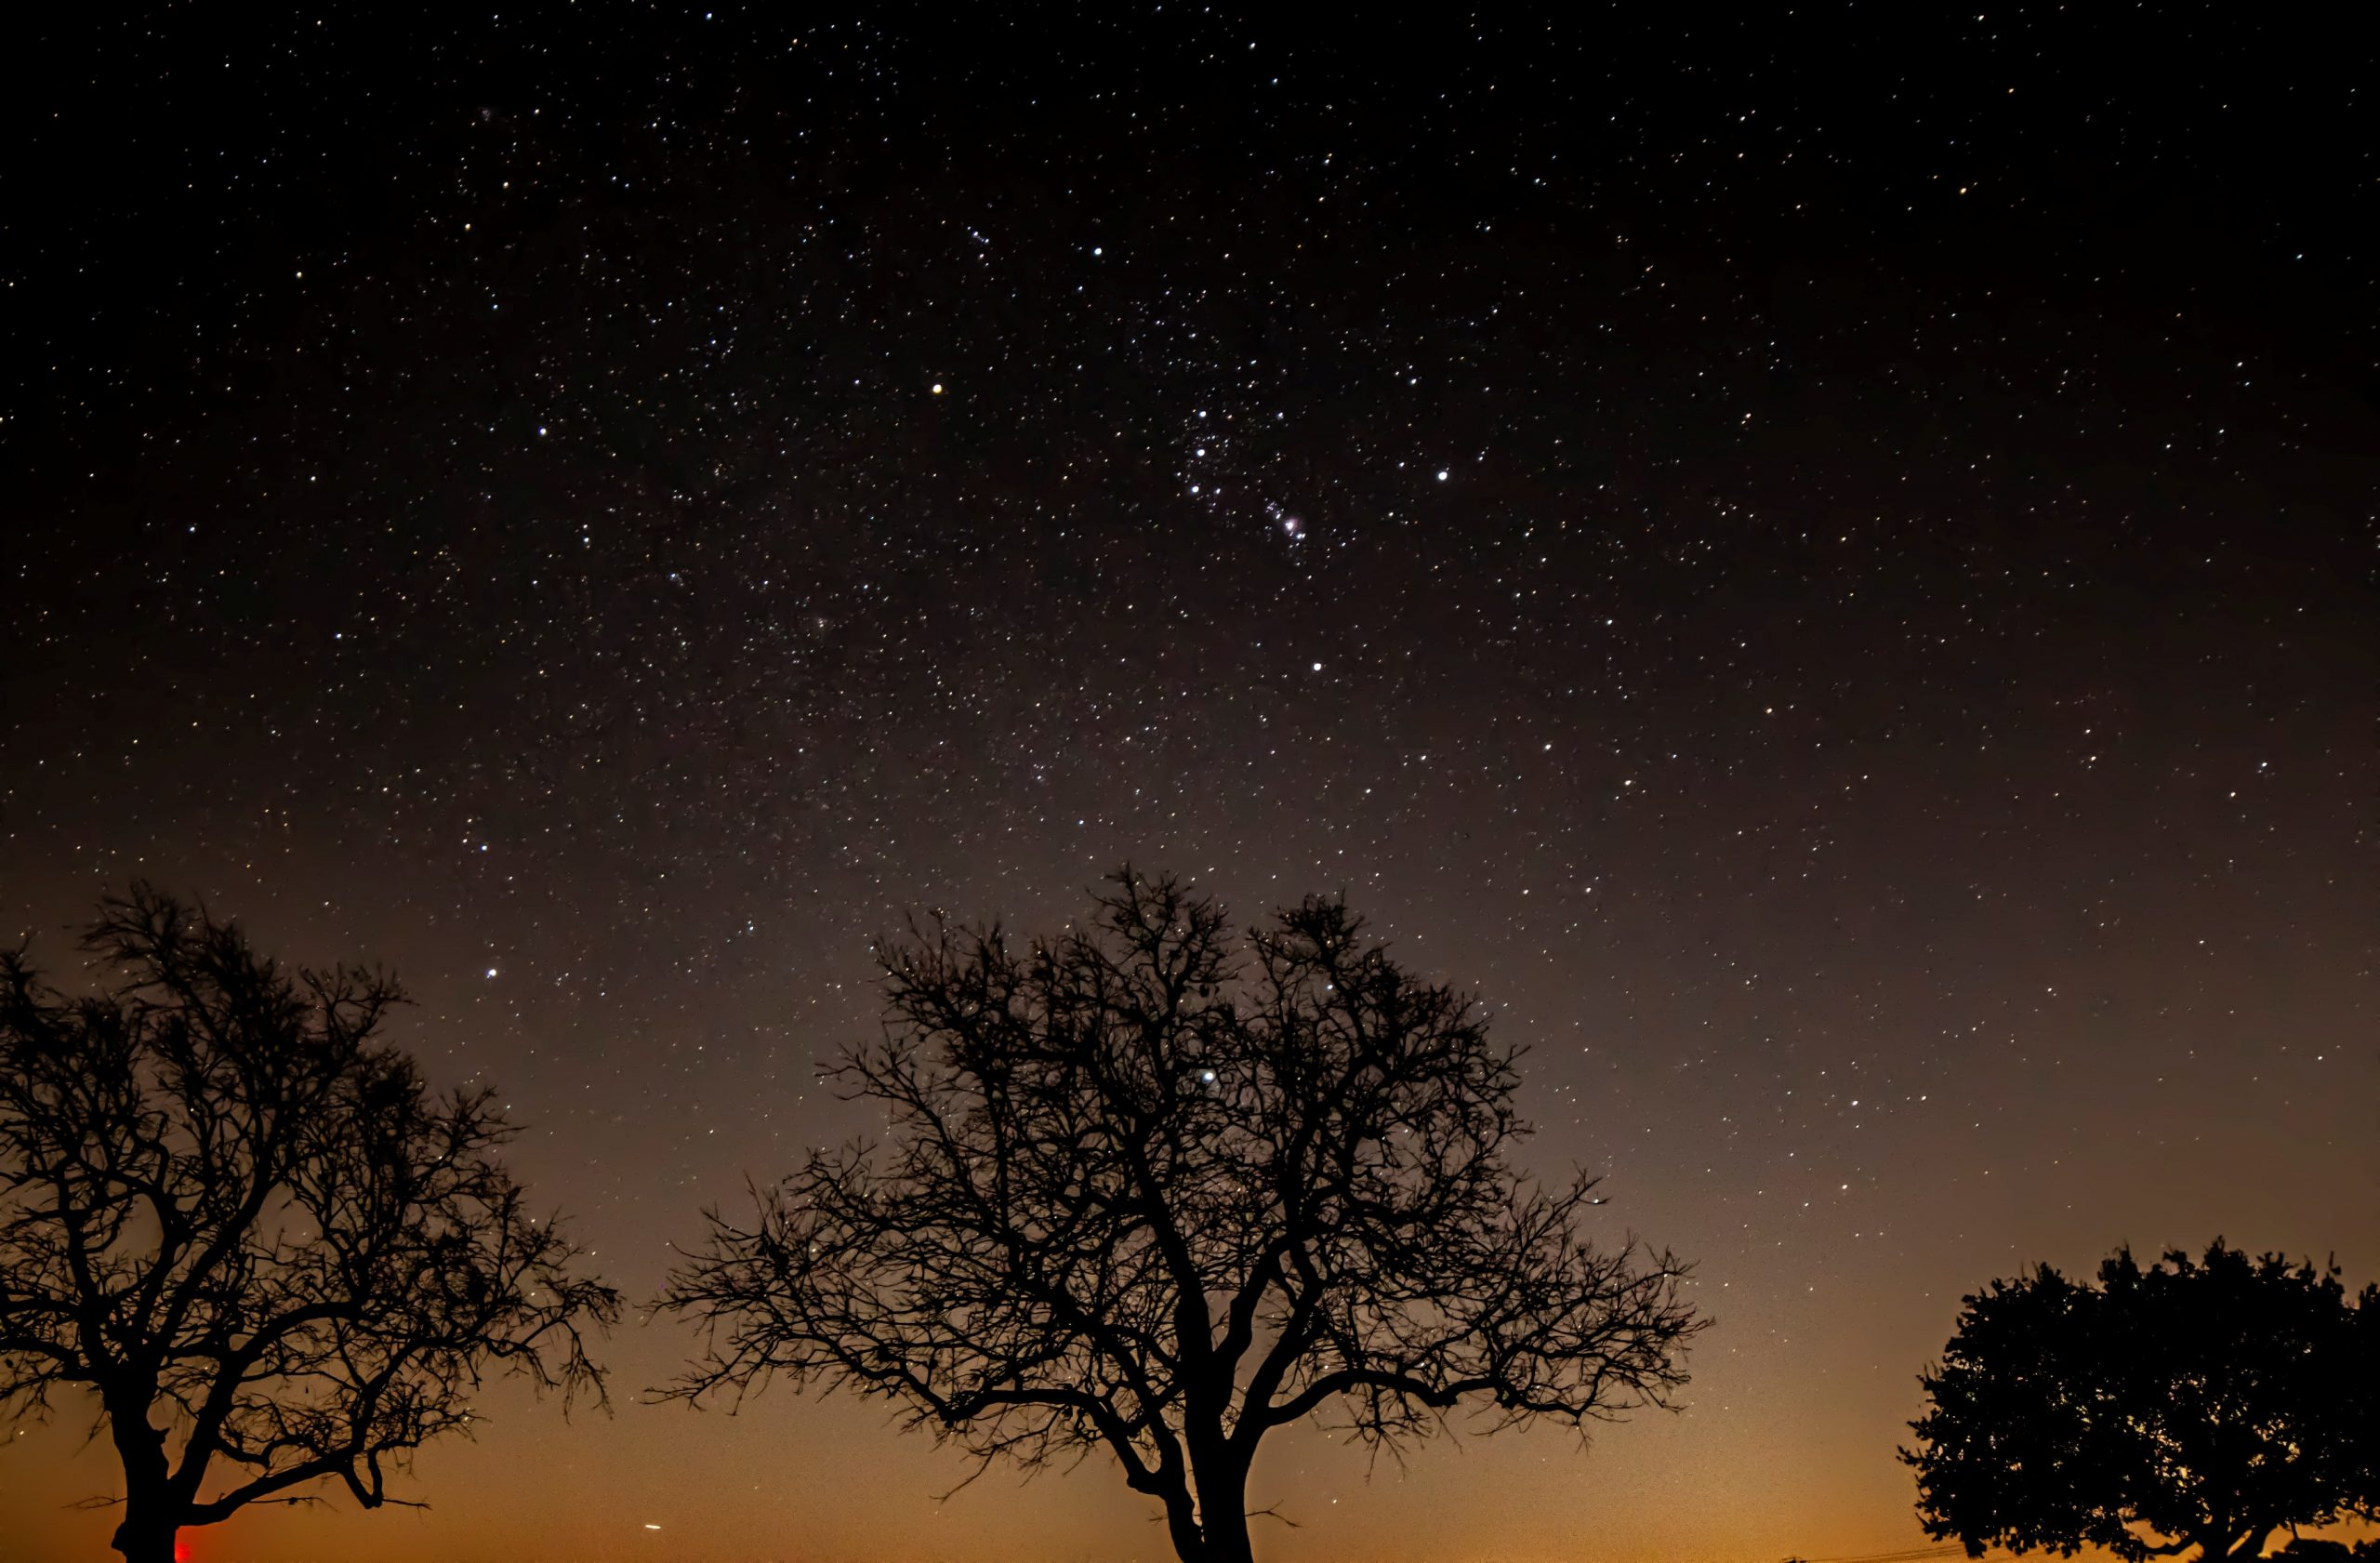 Looking To Get Outside This Fall? How About Stargazing Under Hill Country's Darkest Skies.